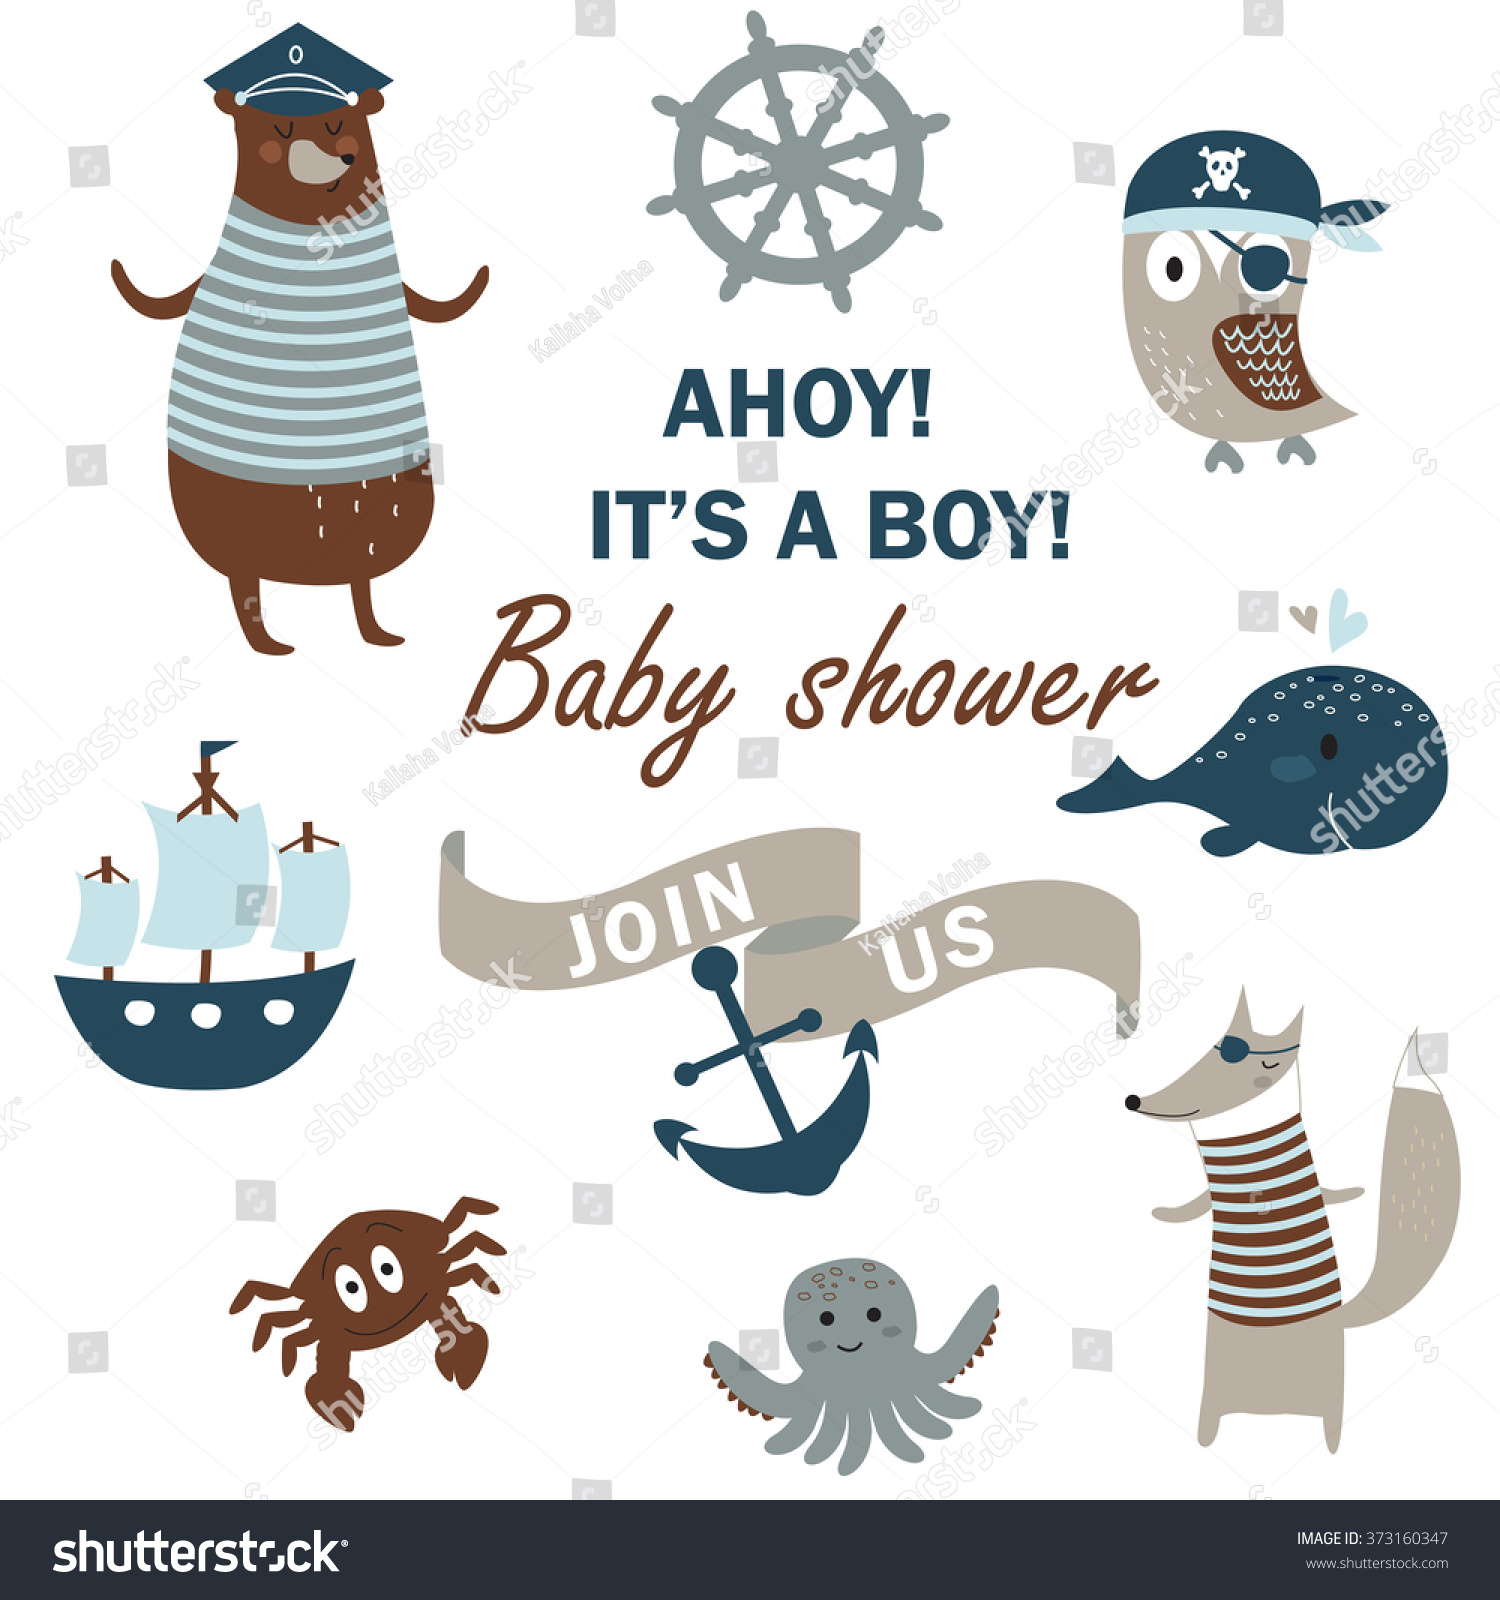 baby shower invitation cute animals nautical のベクター画像素材